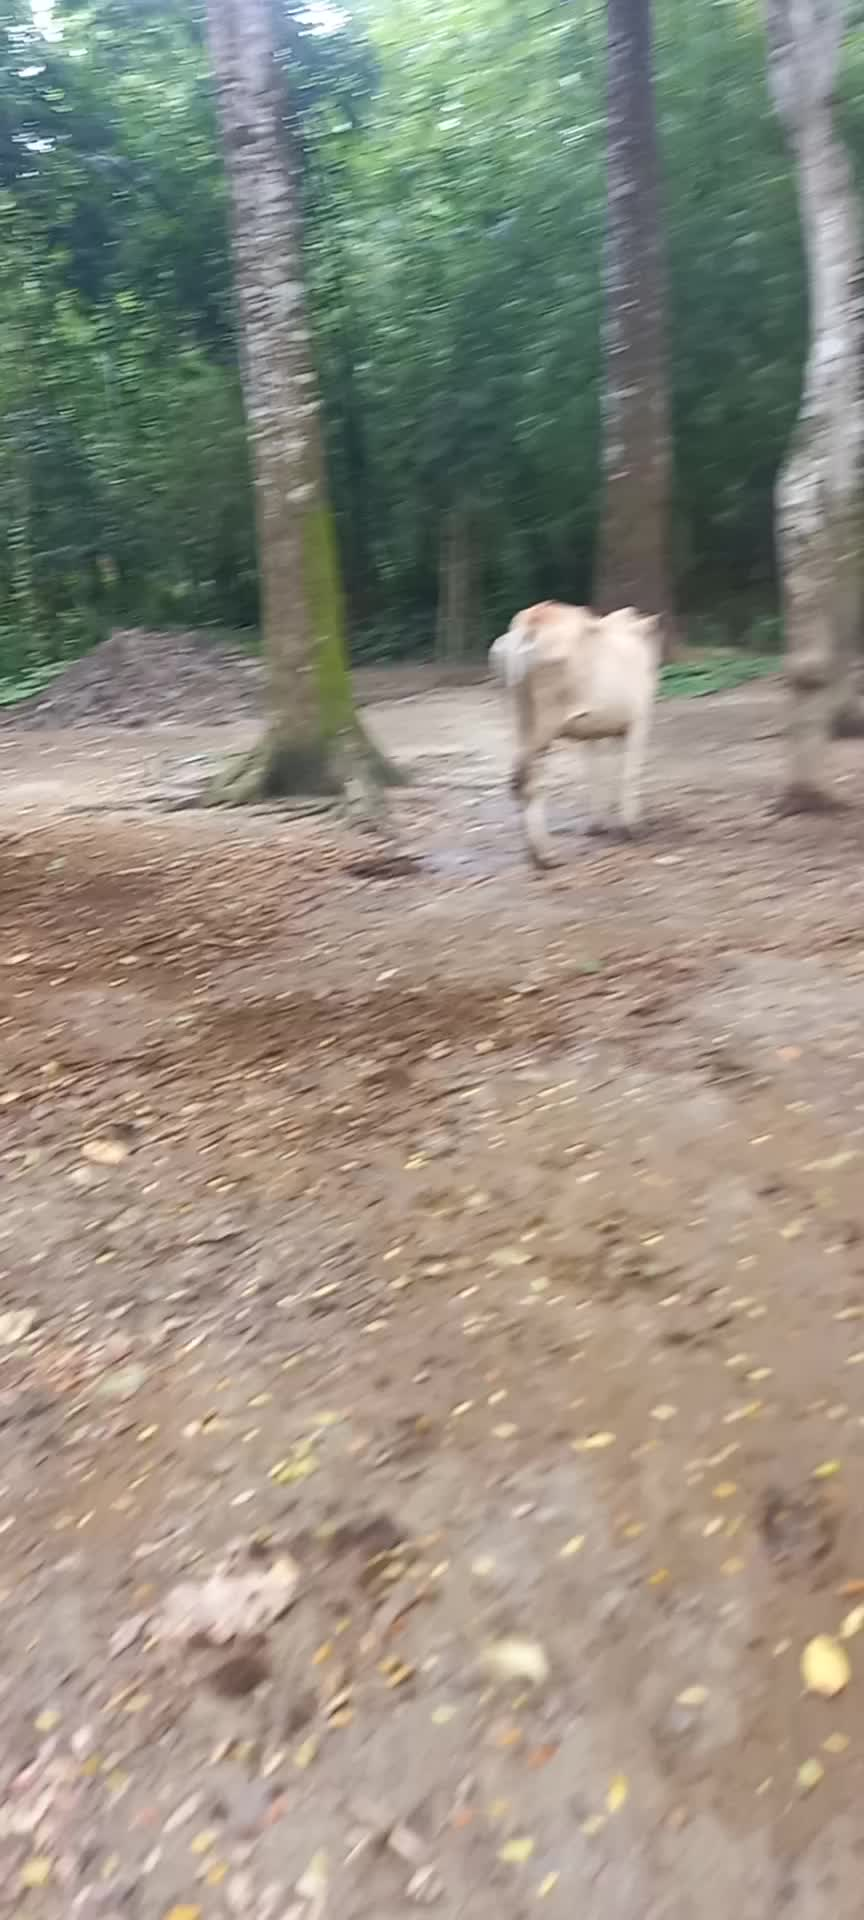 Some cow weather in rural areas.